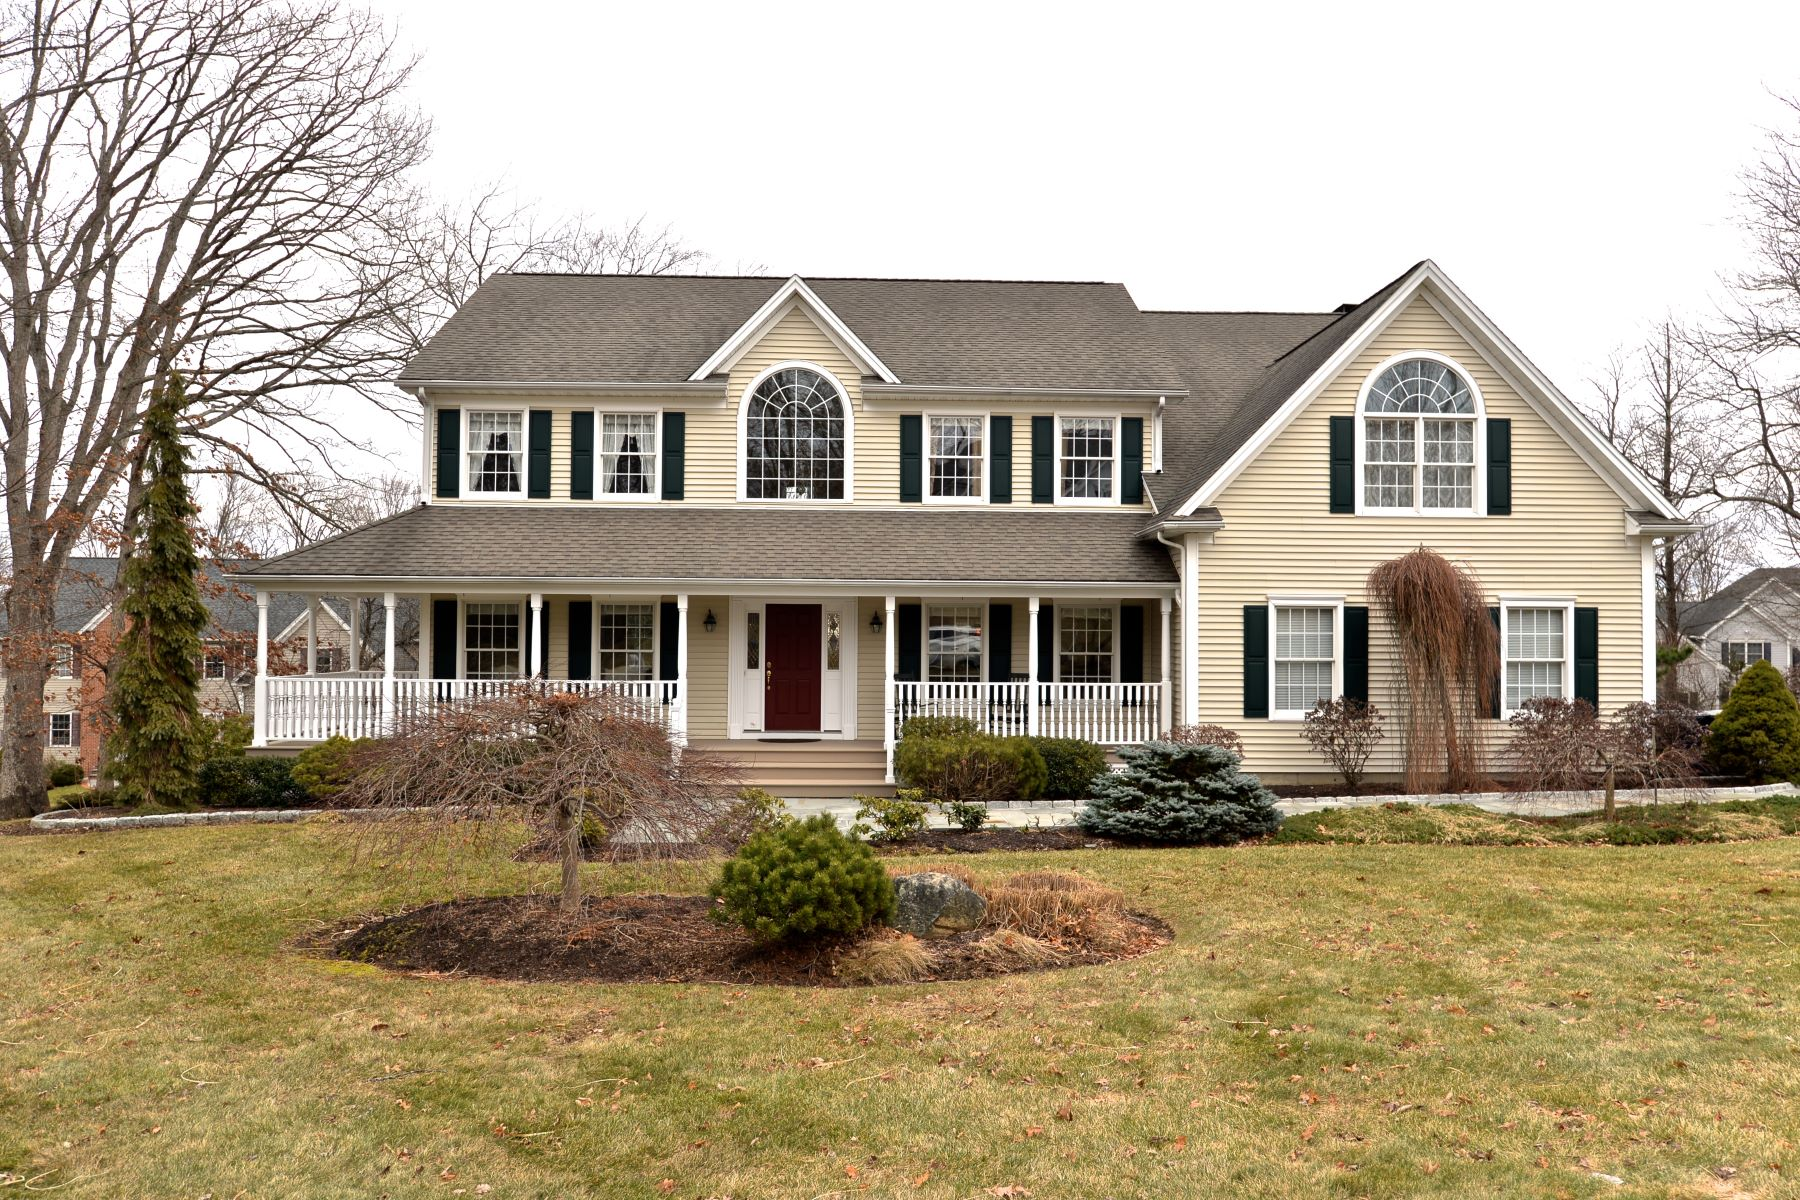 Single Family Homes for Active at Your Dream Home Awaits 14 Josh Ln Danbury, Connecticut 06811 United States